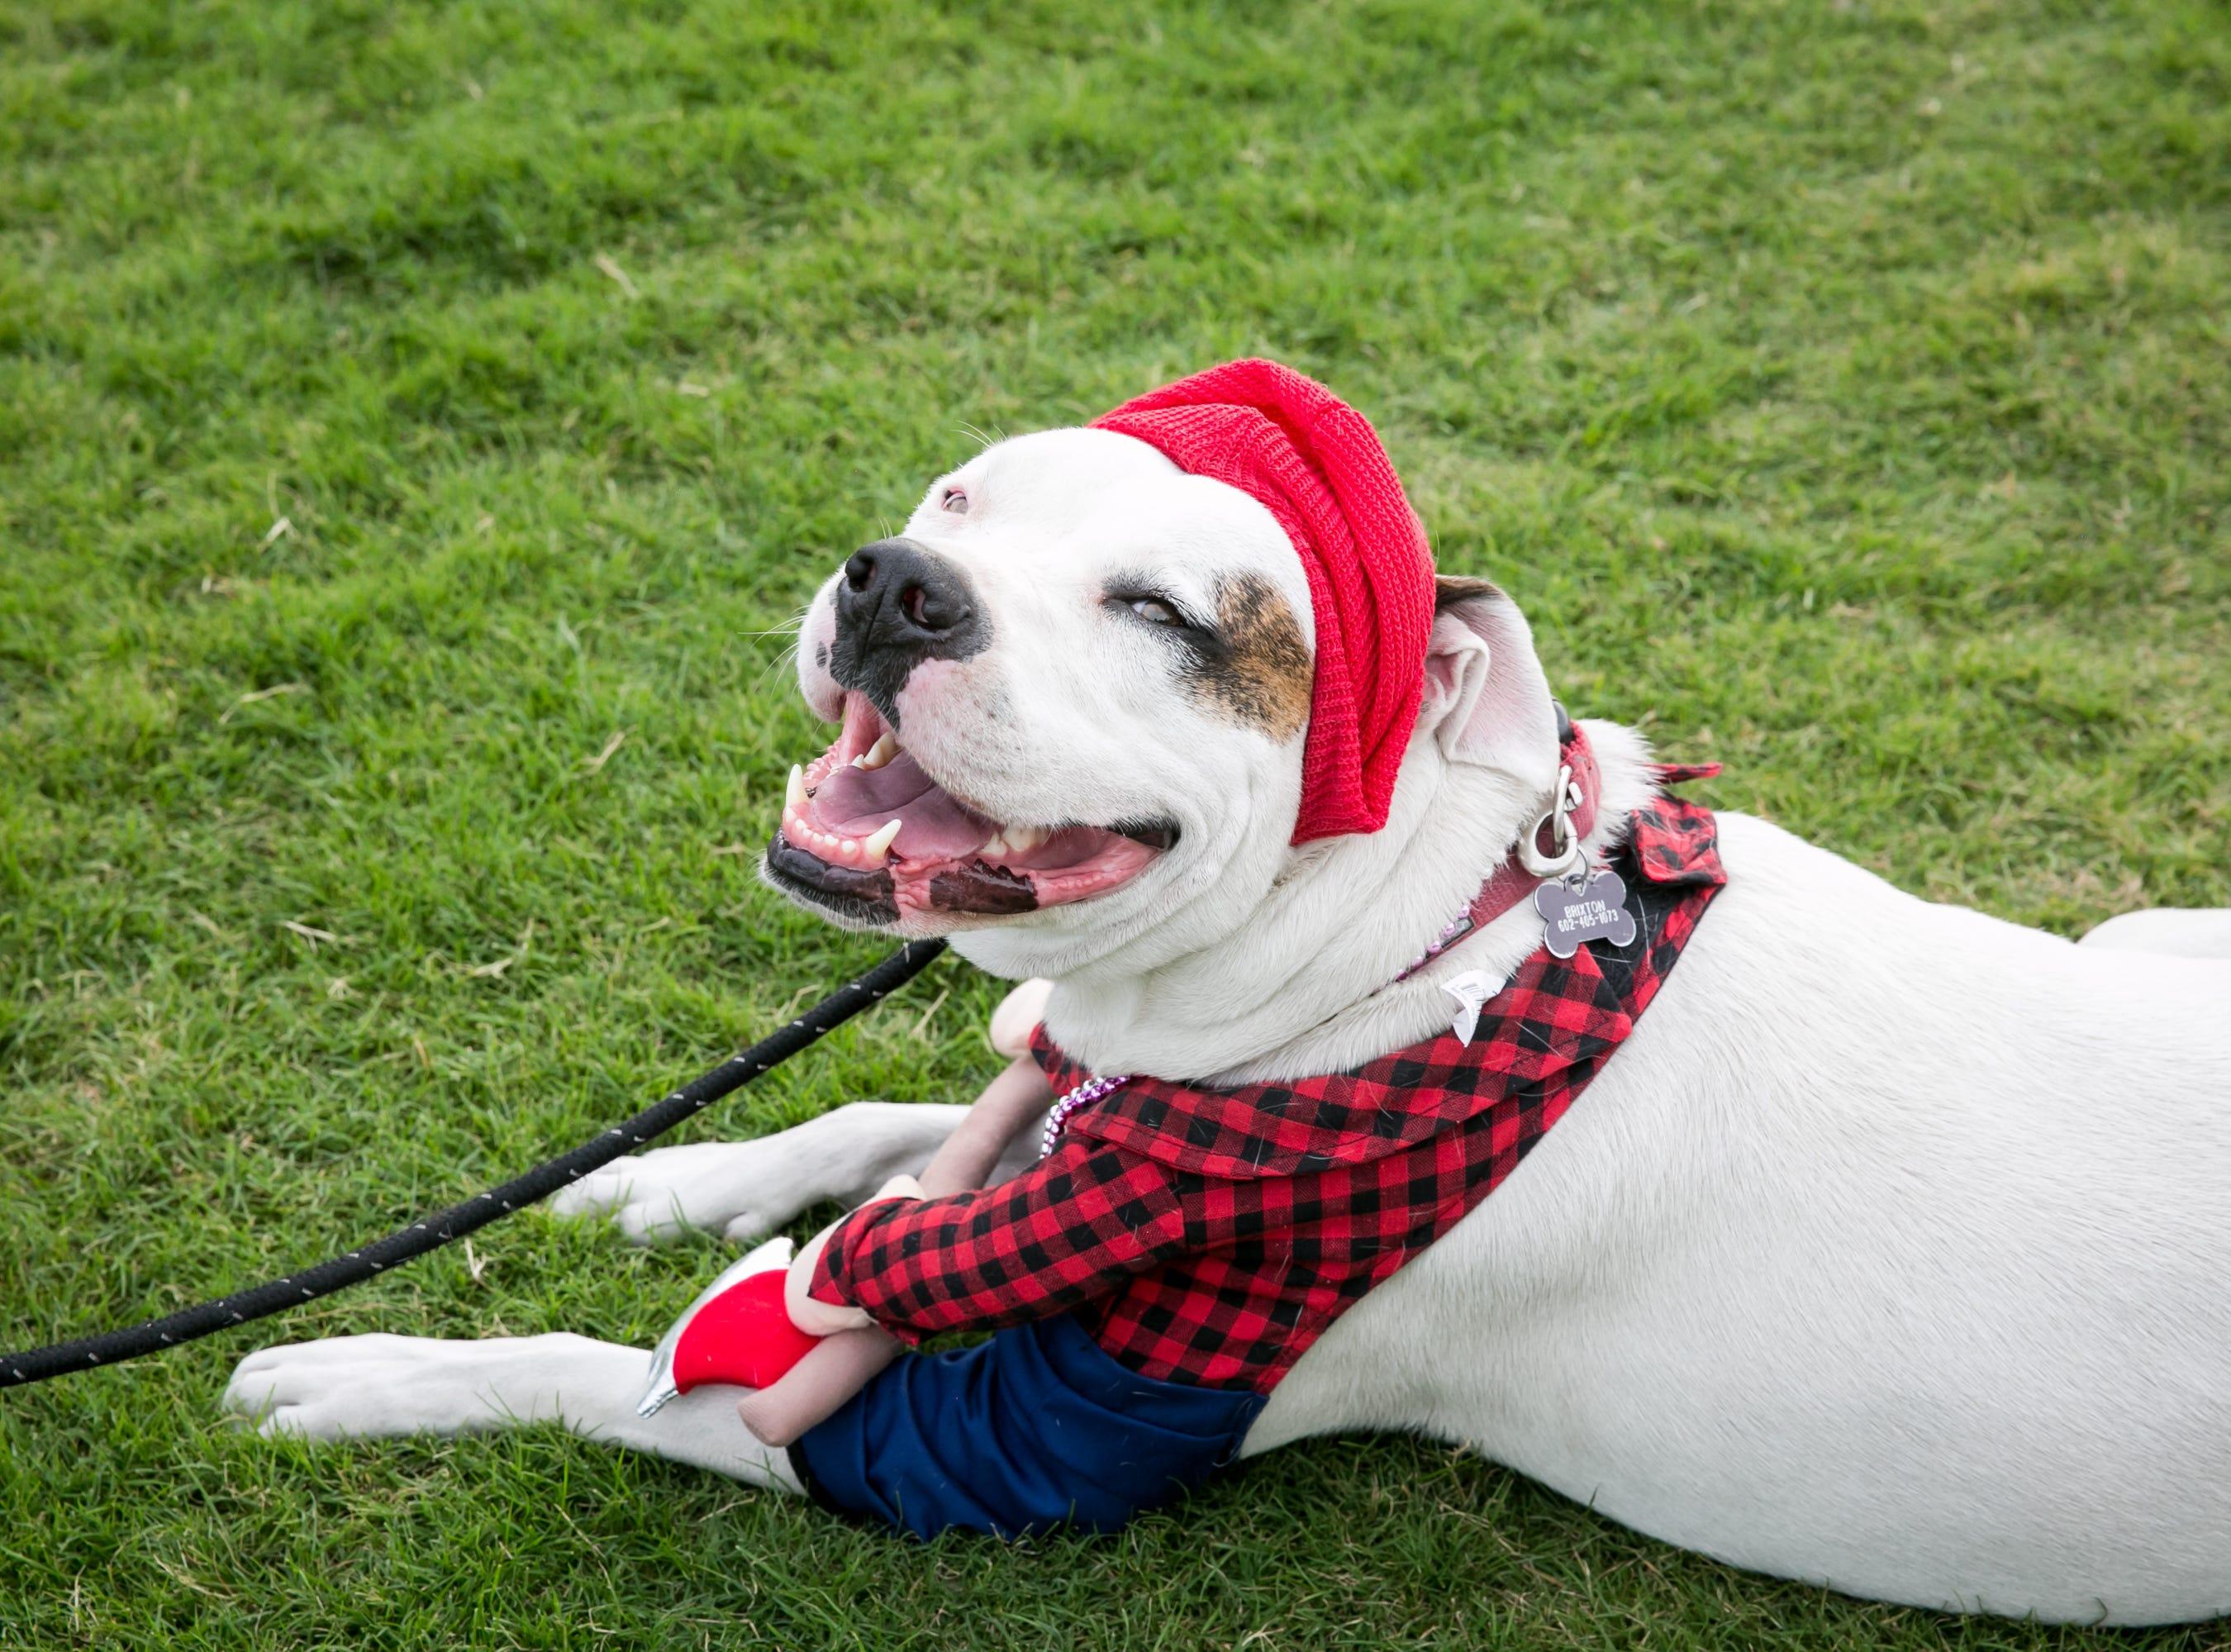 This dog had a great time during Howl-o-Ween at Hance Park on Sunday, October 28, 2018.